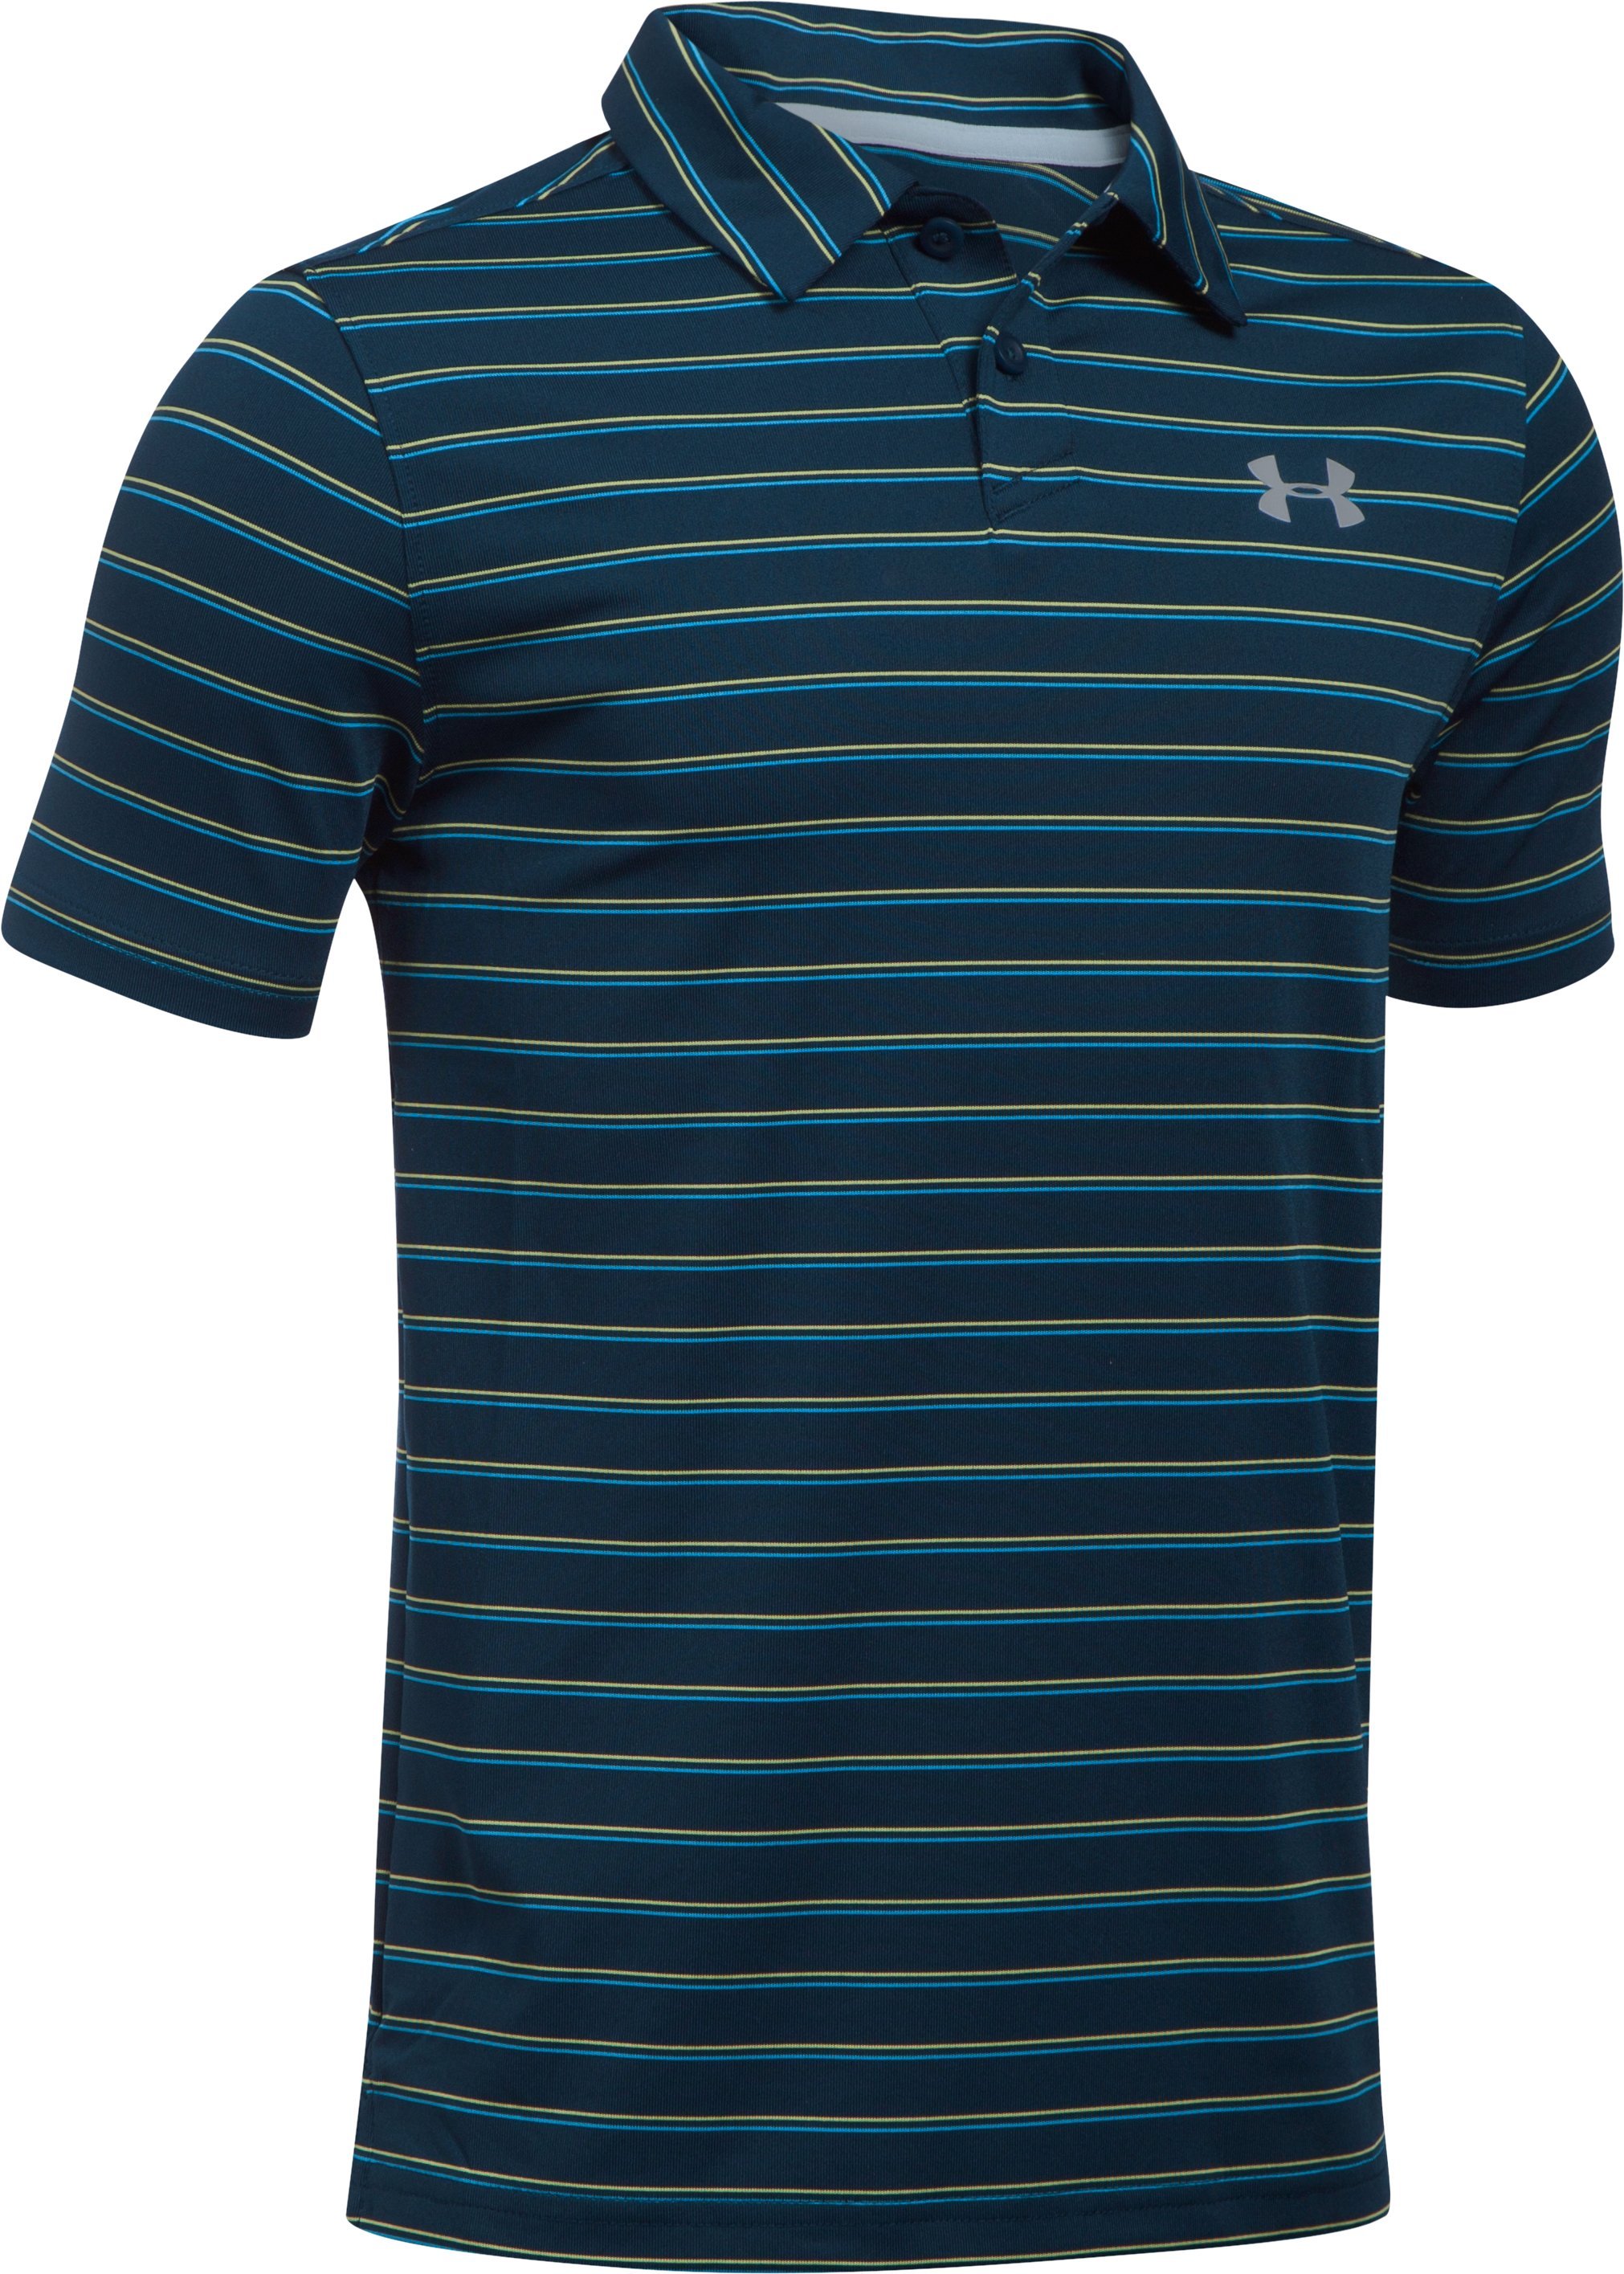 Boys' UA Putting Stripe Polo Shirt, Academy, zoomed image